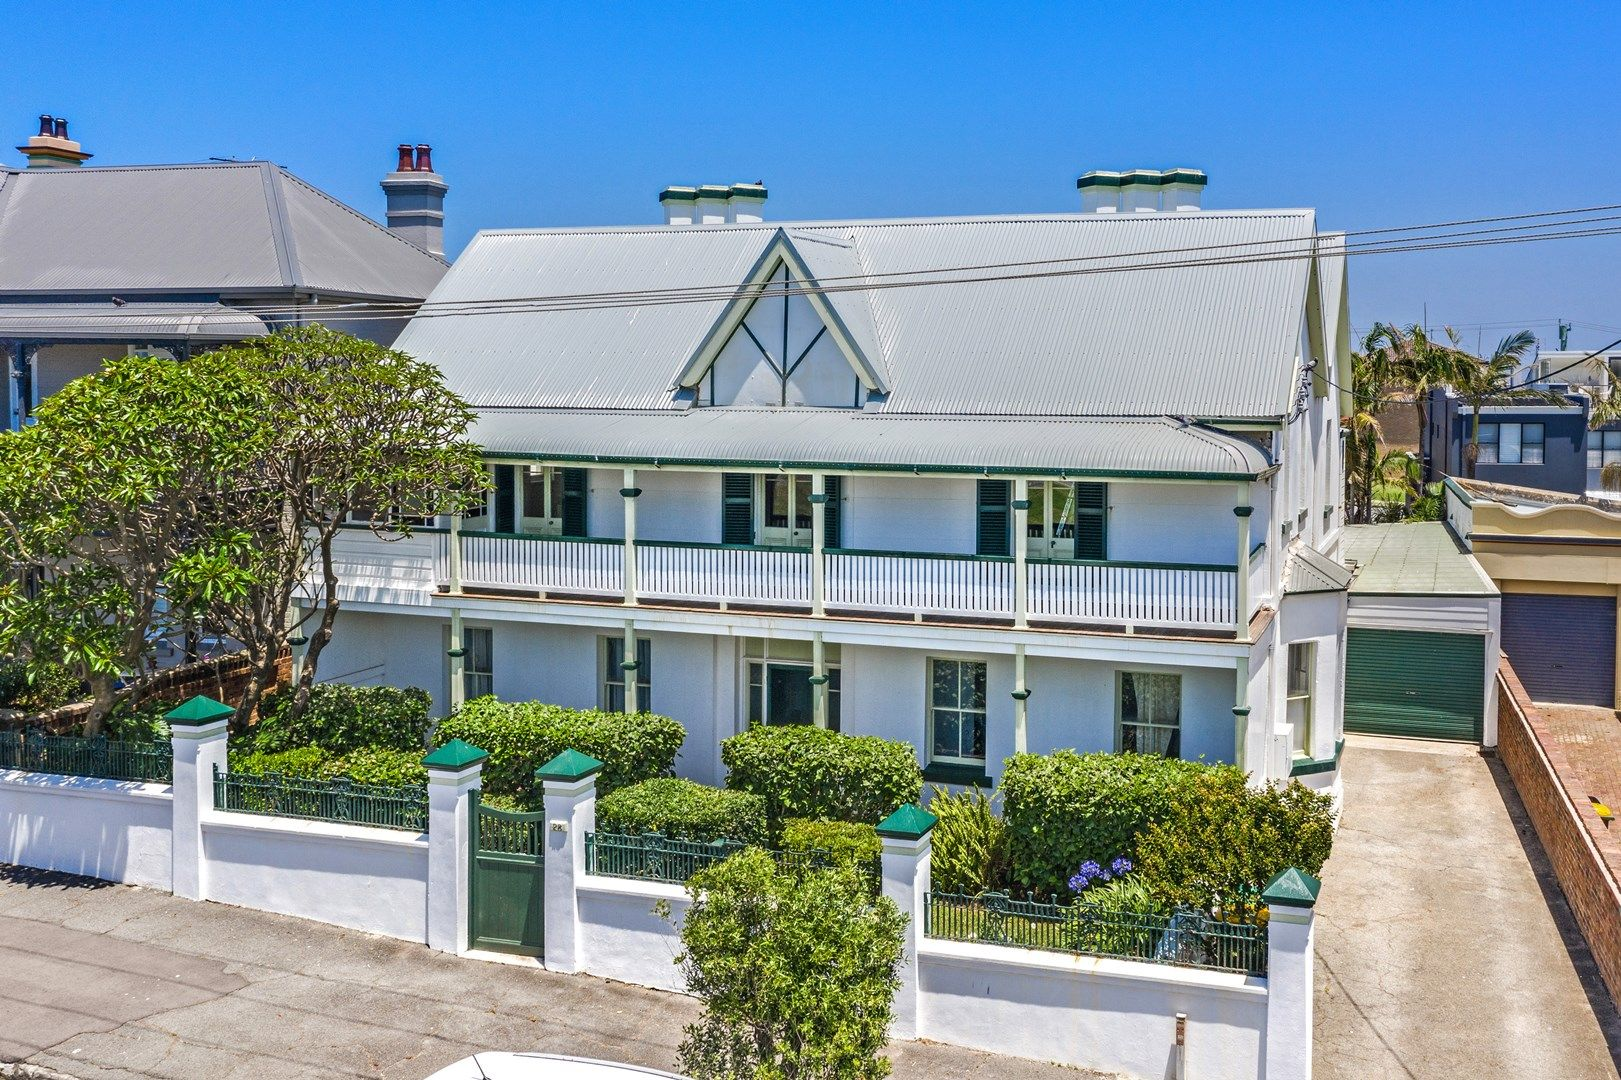 28 The Terrace, The Hill NSW 2300, Image 0